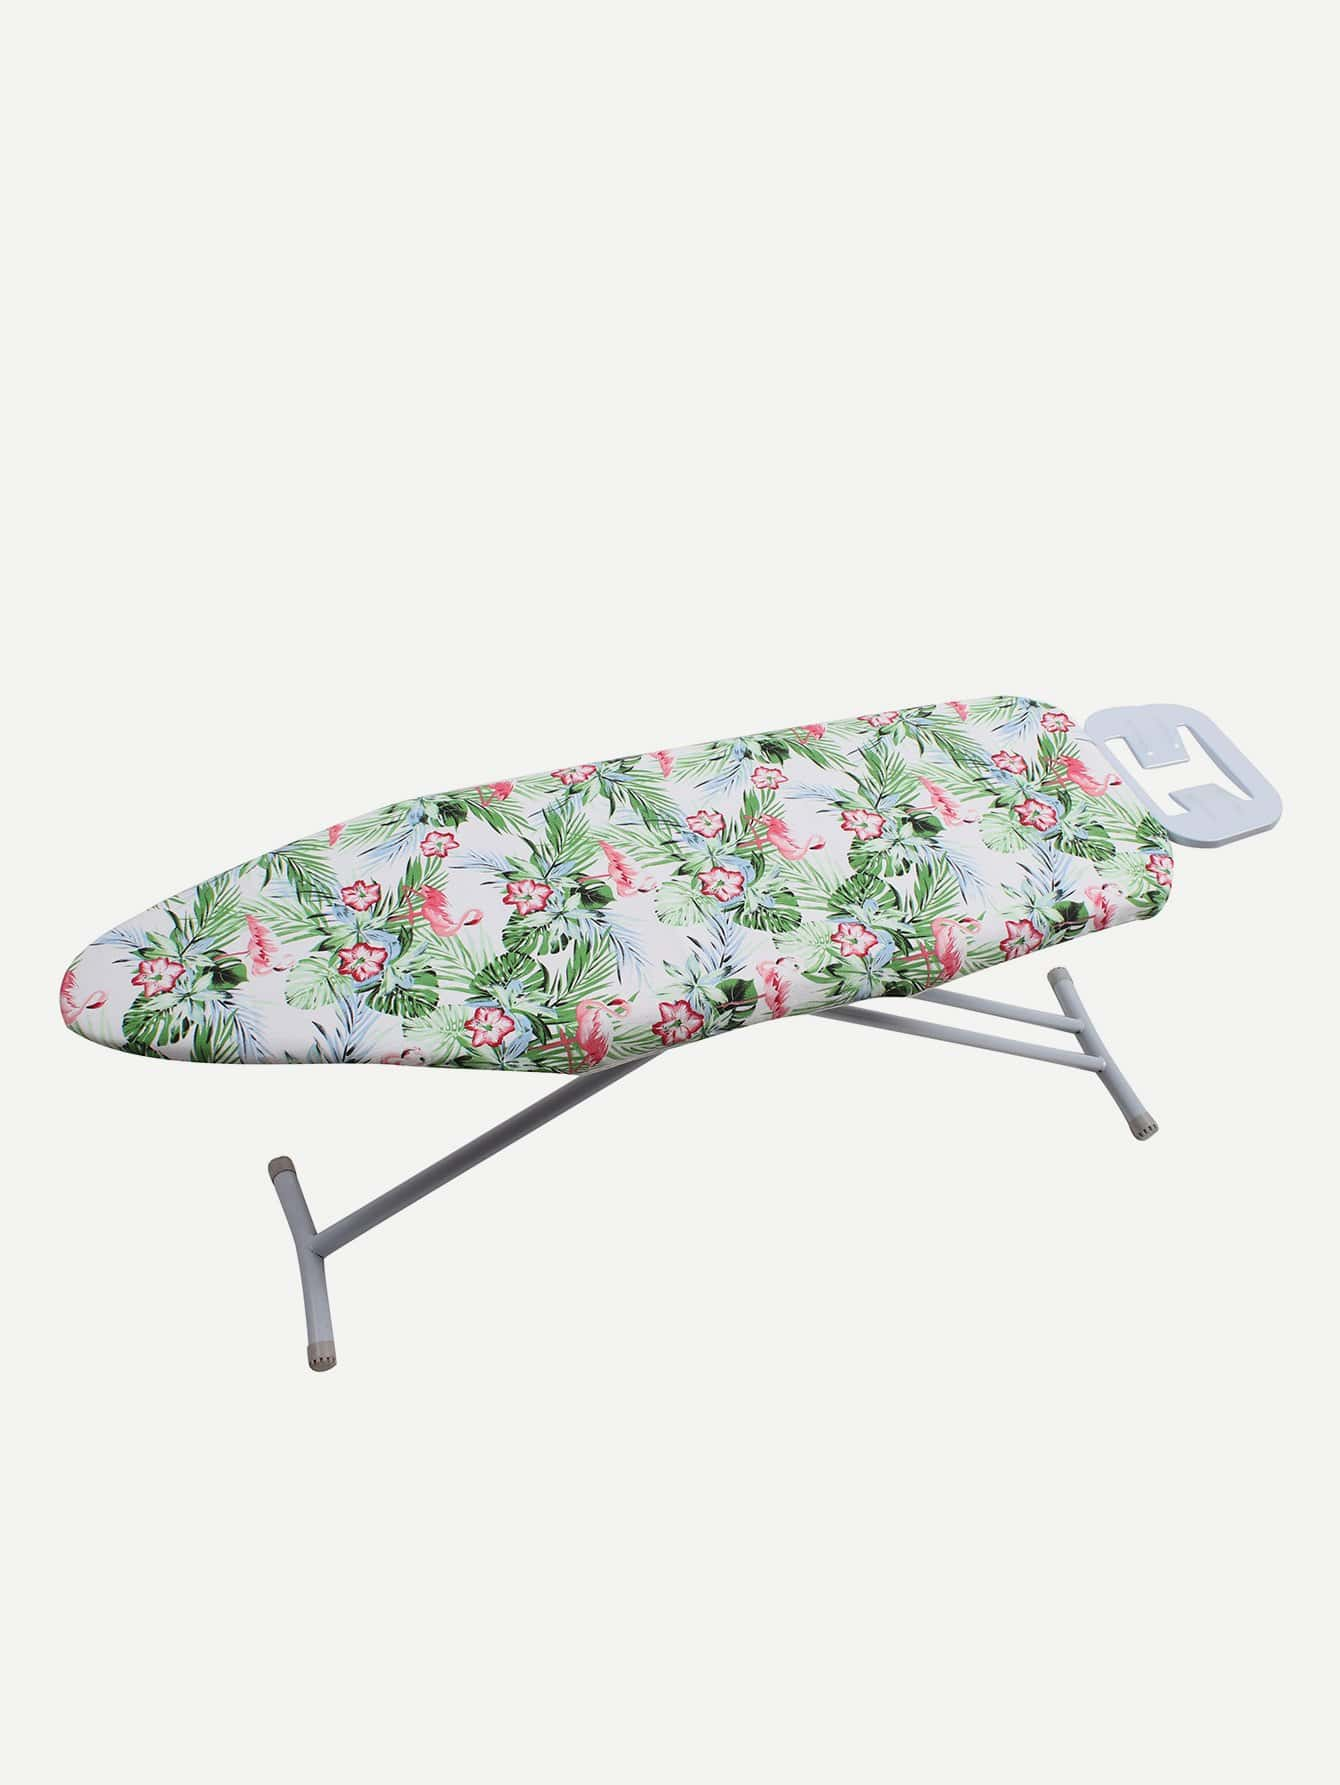 Flamingo Print Ironing Board Cover iron shoe cover ironing aid board protect ptfe fabrics cloth heat easy fast